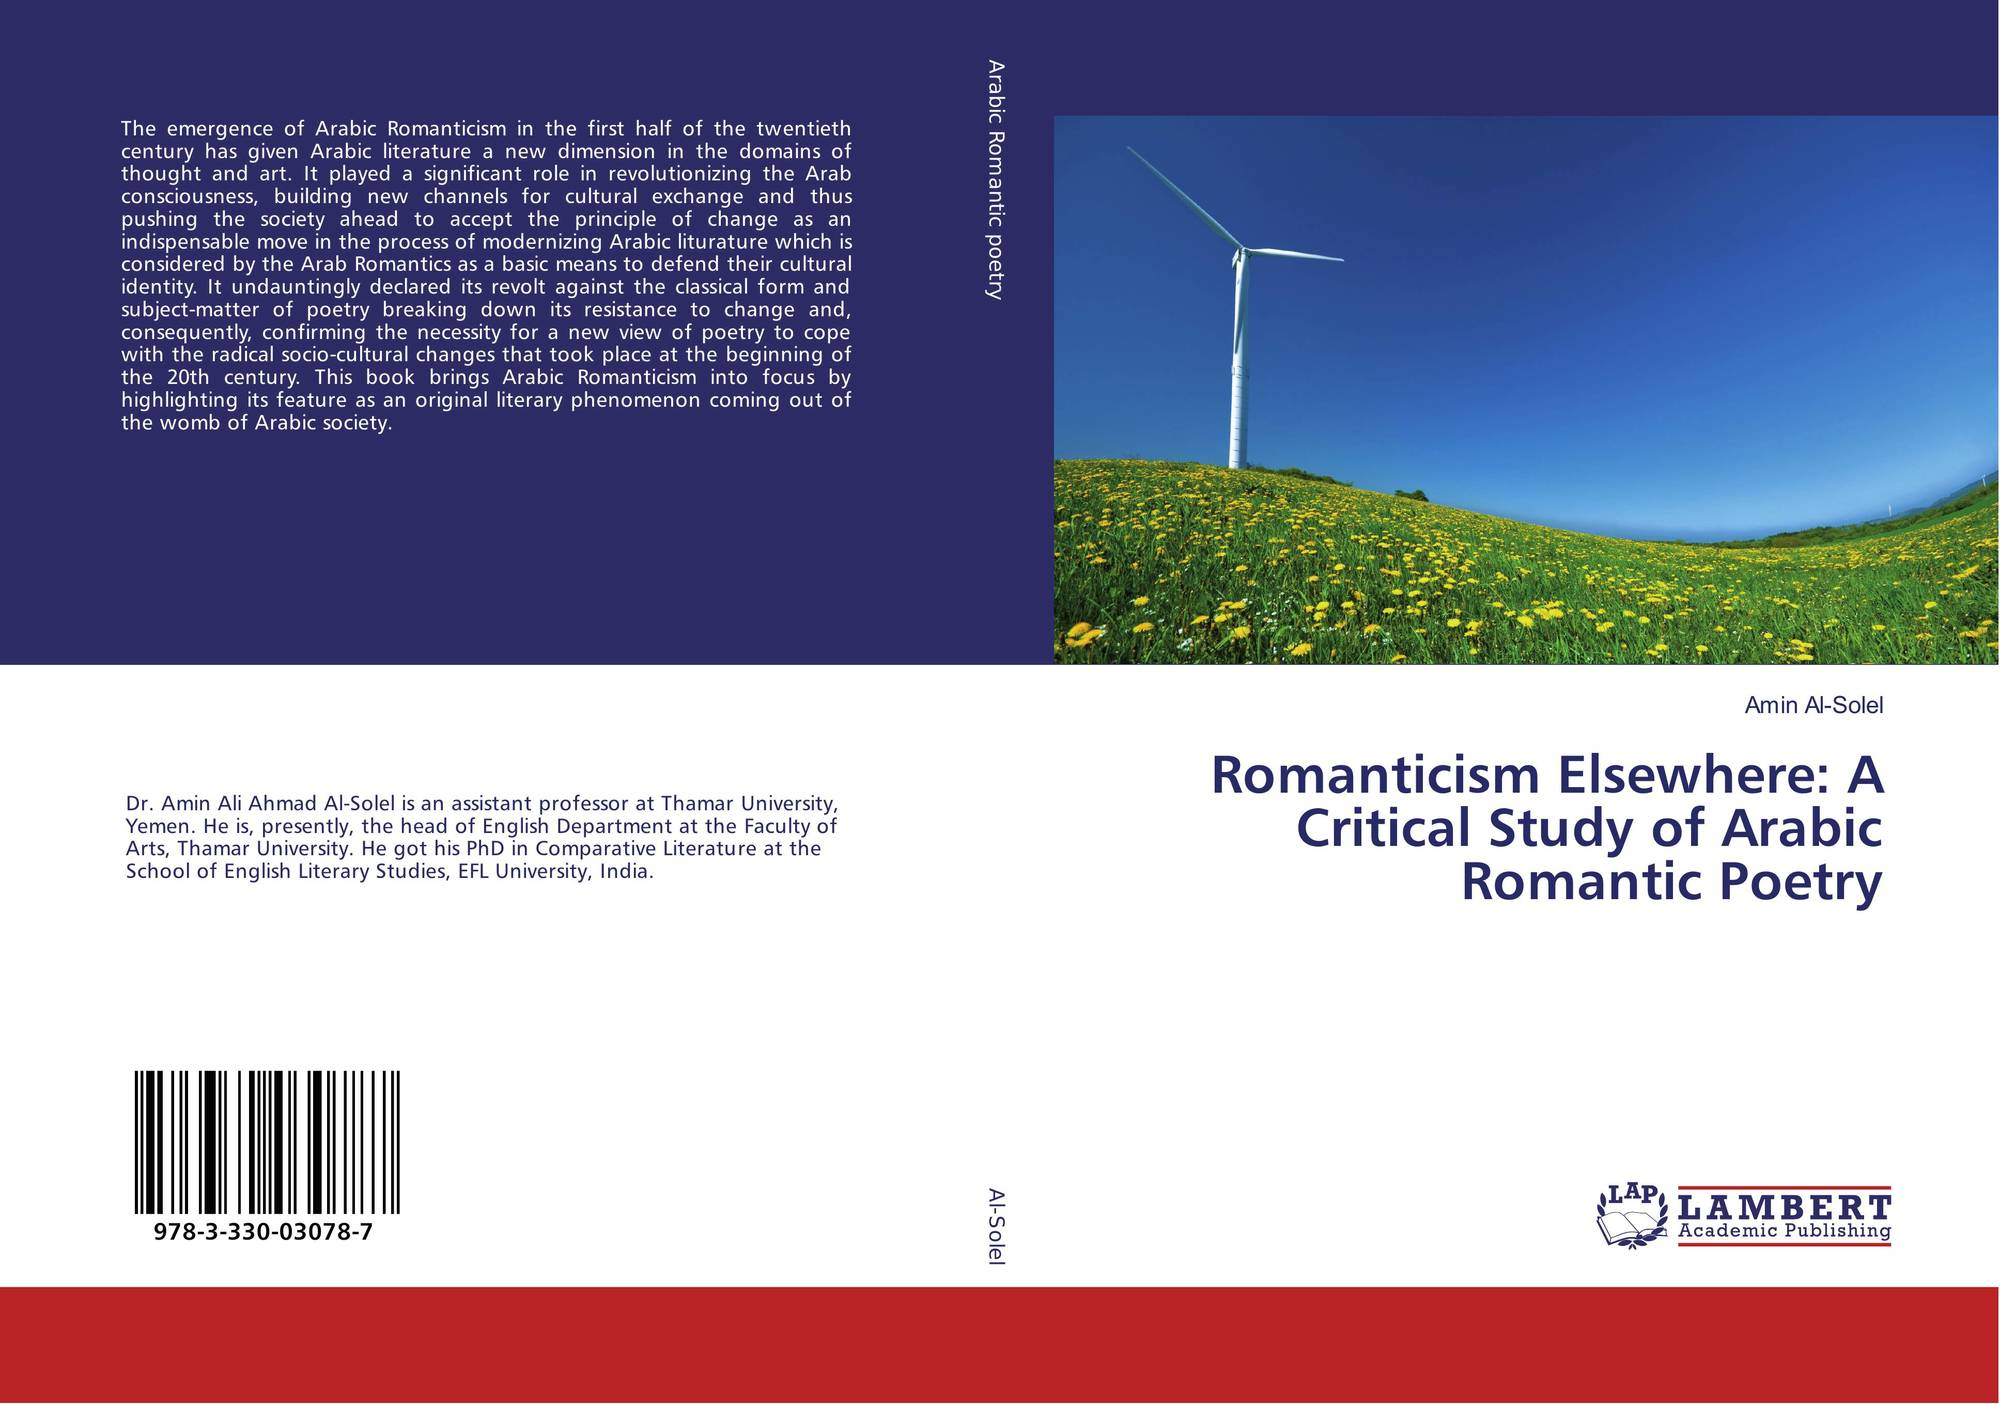 an examination of basic themes of romanticism The basic idea in romanticism is that reason cannot examination of romantic texts provides us with only a limited and much essay european romanticism.